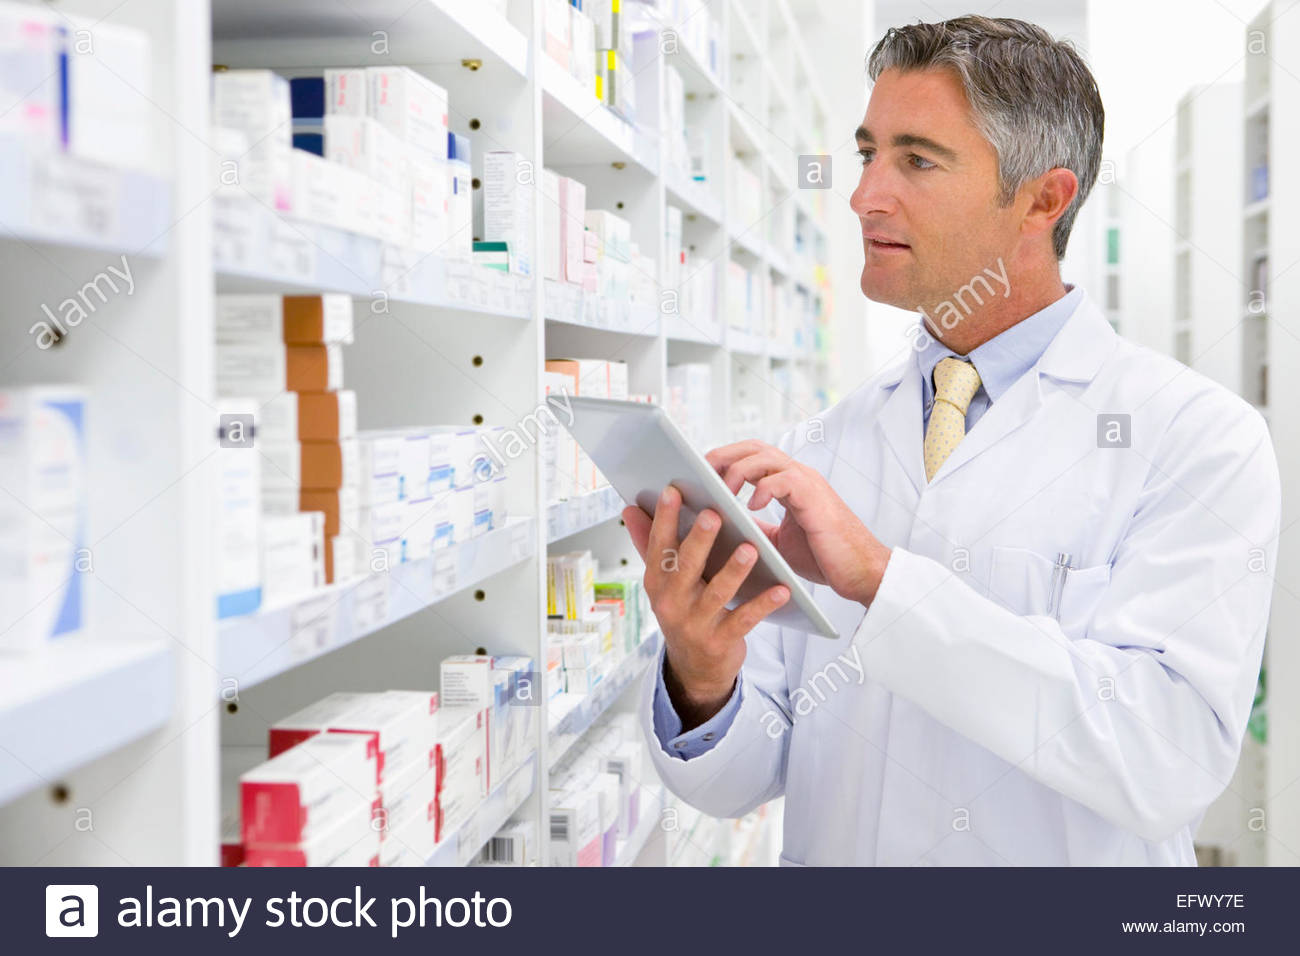 Pharmacist with digital tablet looking for medication on pharmacy shelf - Stock Image